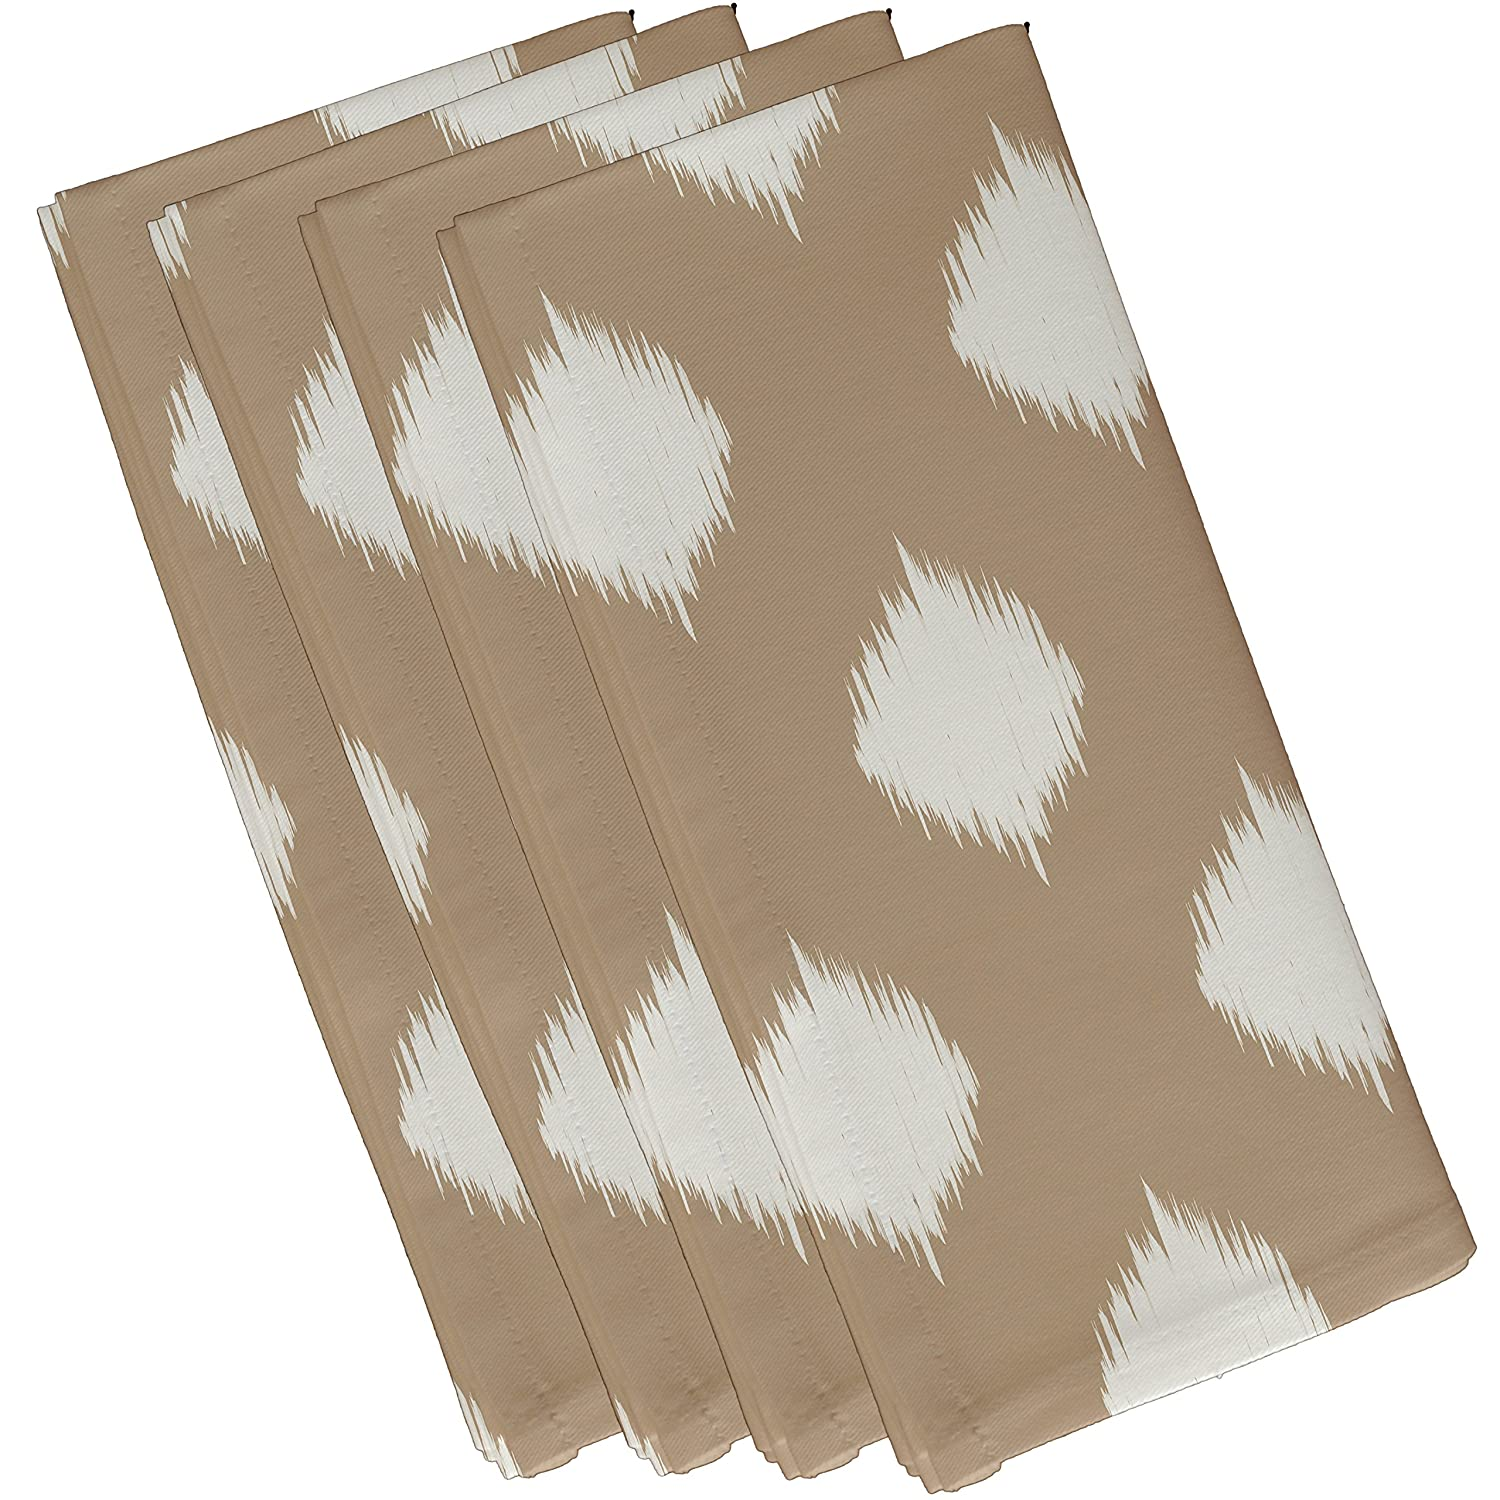 Size: M 0.02 Height Pack of 100 Dinex DXHS201M001 Fathers Day Ties Design Tray Cover with Straight Edge//Round Corner 13-5//8 x 18-3//4 13.625 Width Paper 18.75 Length